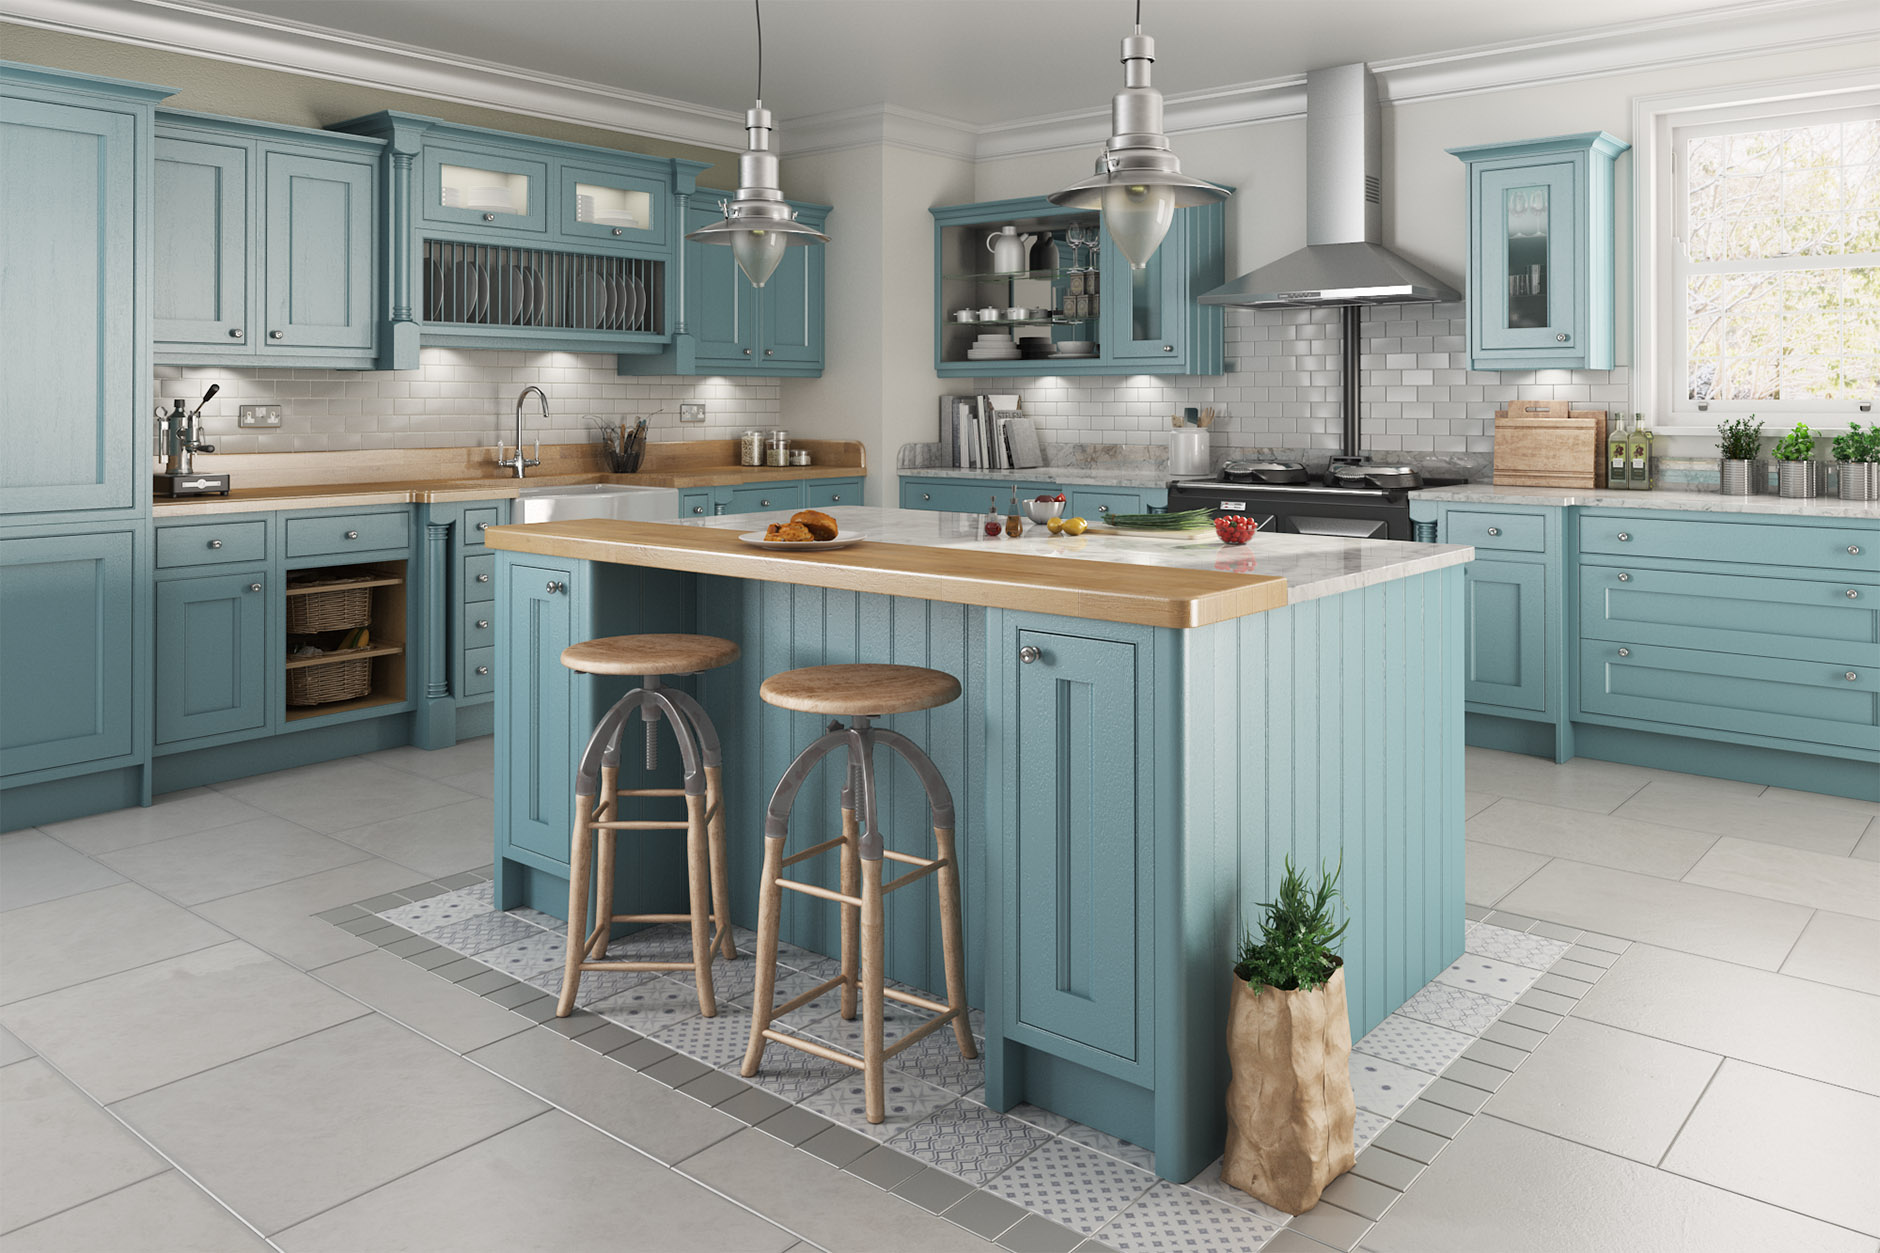 Designer Kitchens Wakefield, West Yorkshire. High Quality Kitchens ...